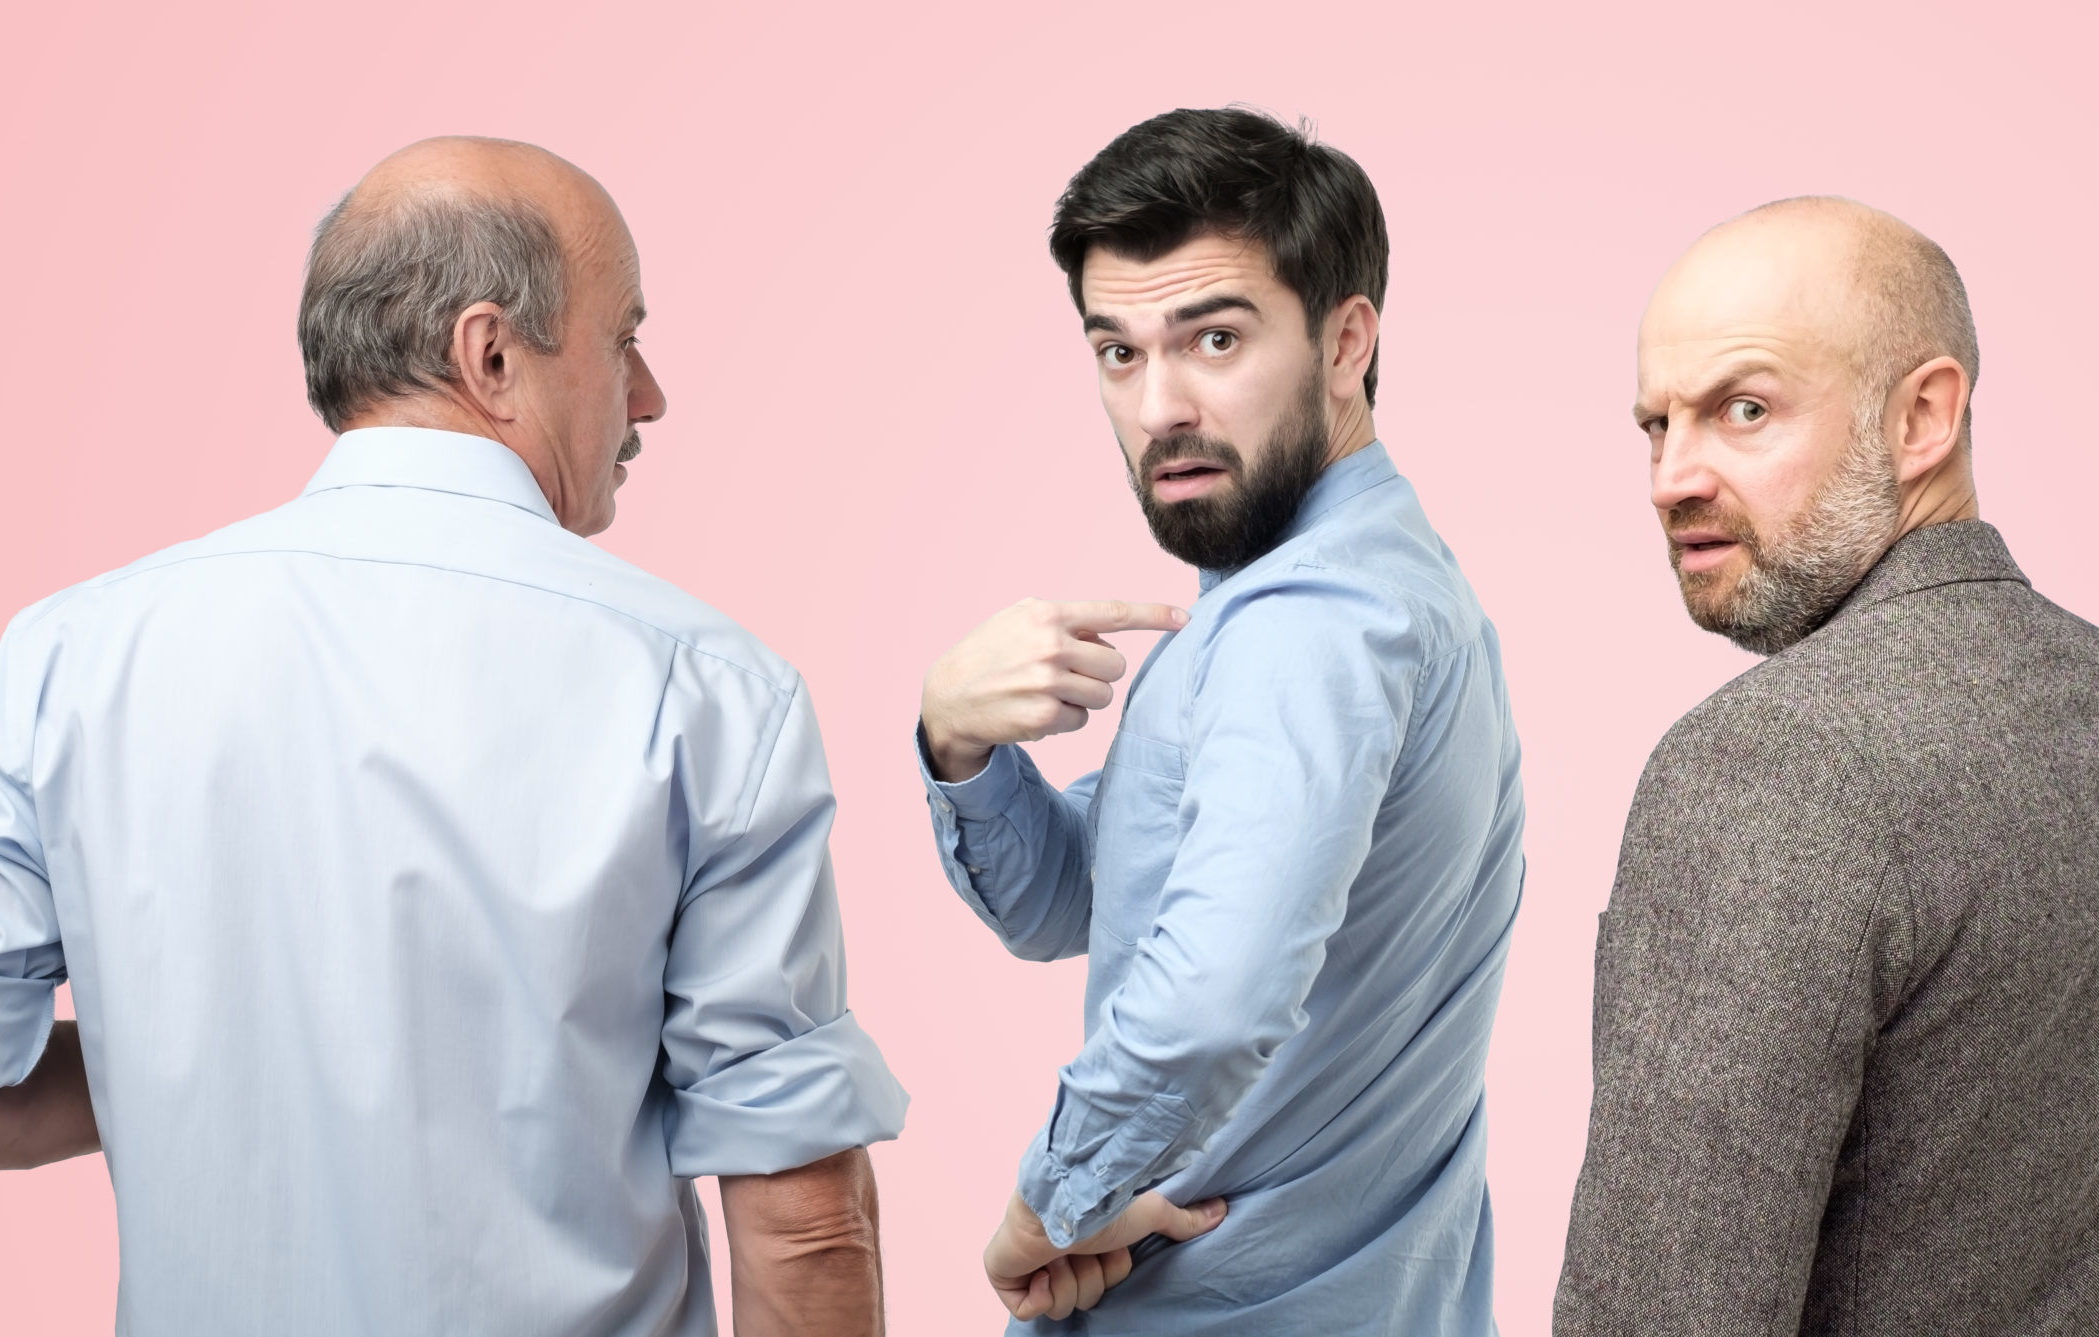 Several people standing and talking animatedly representing unsettled employees as a result of IT project poorly managed